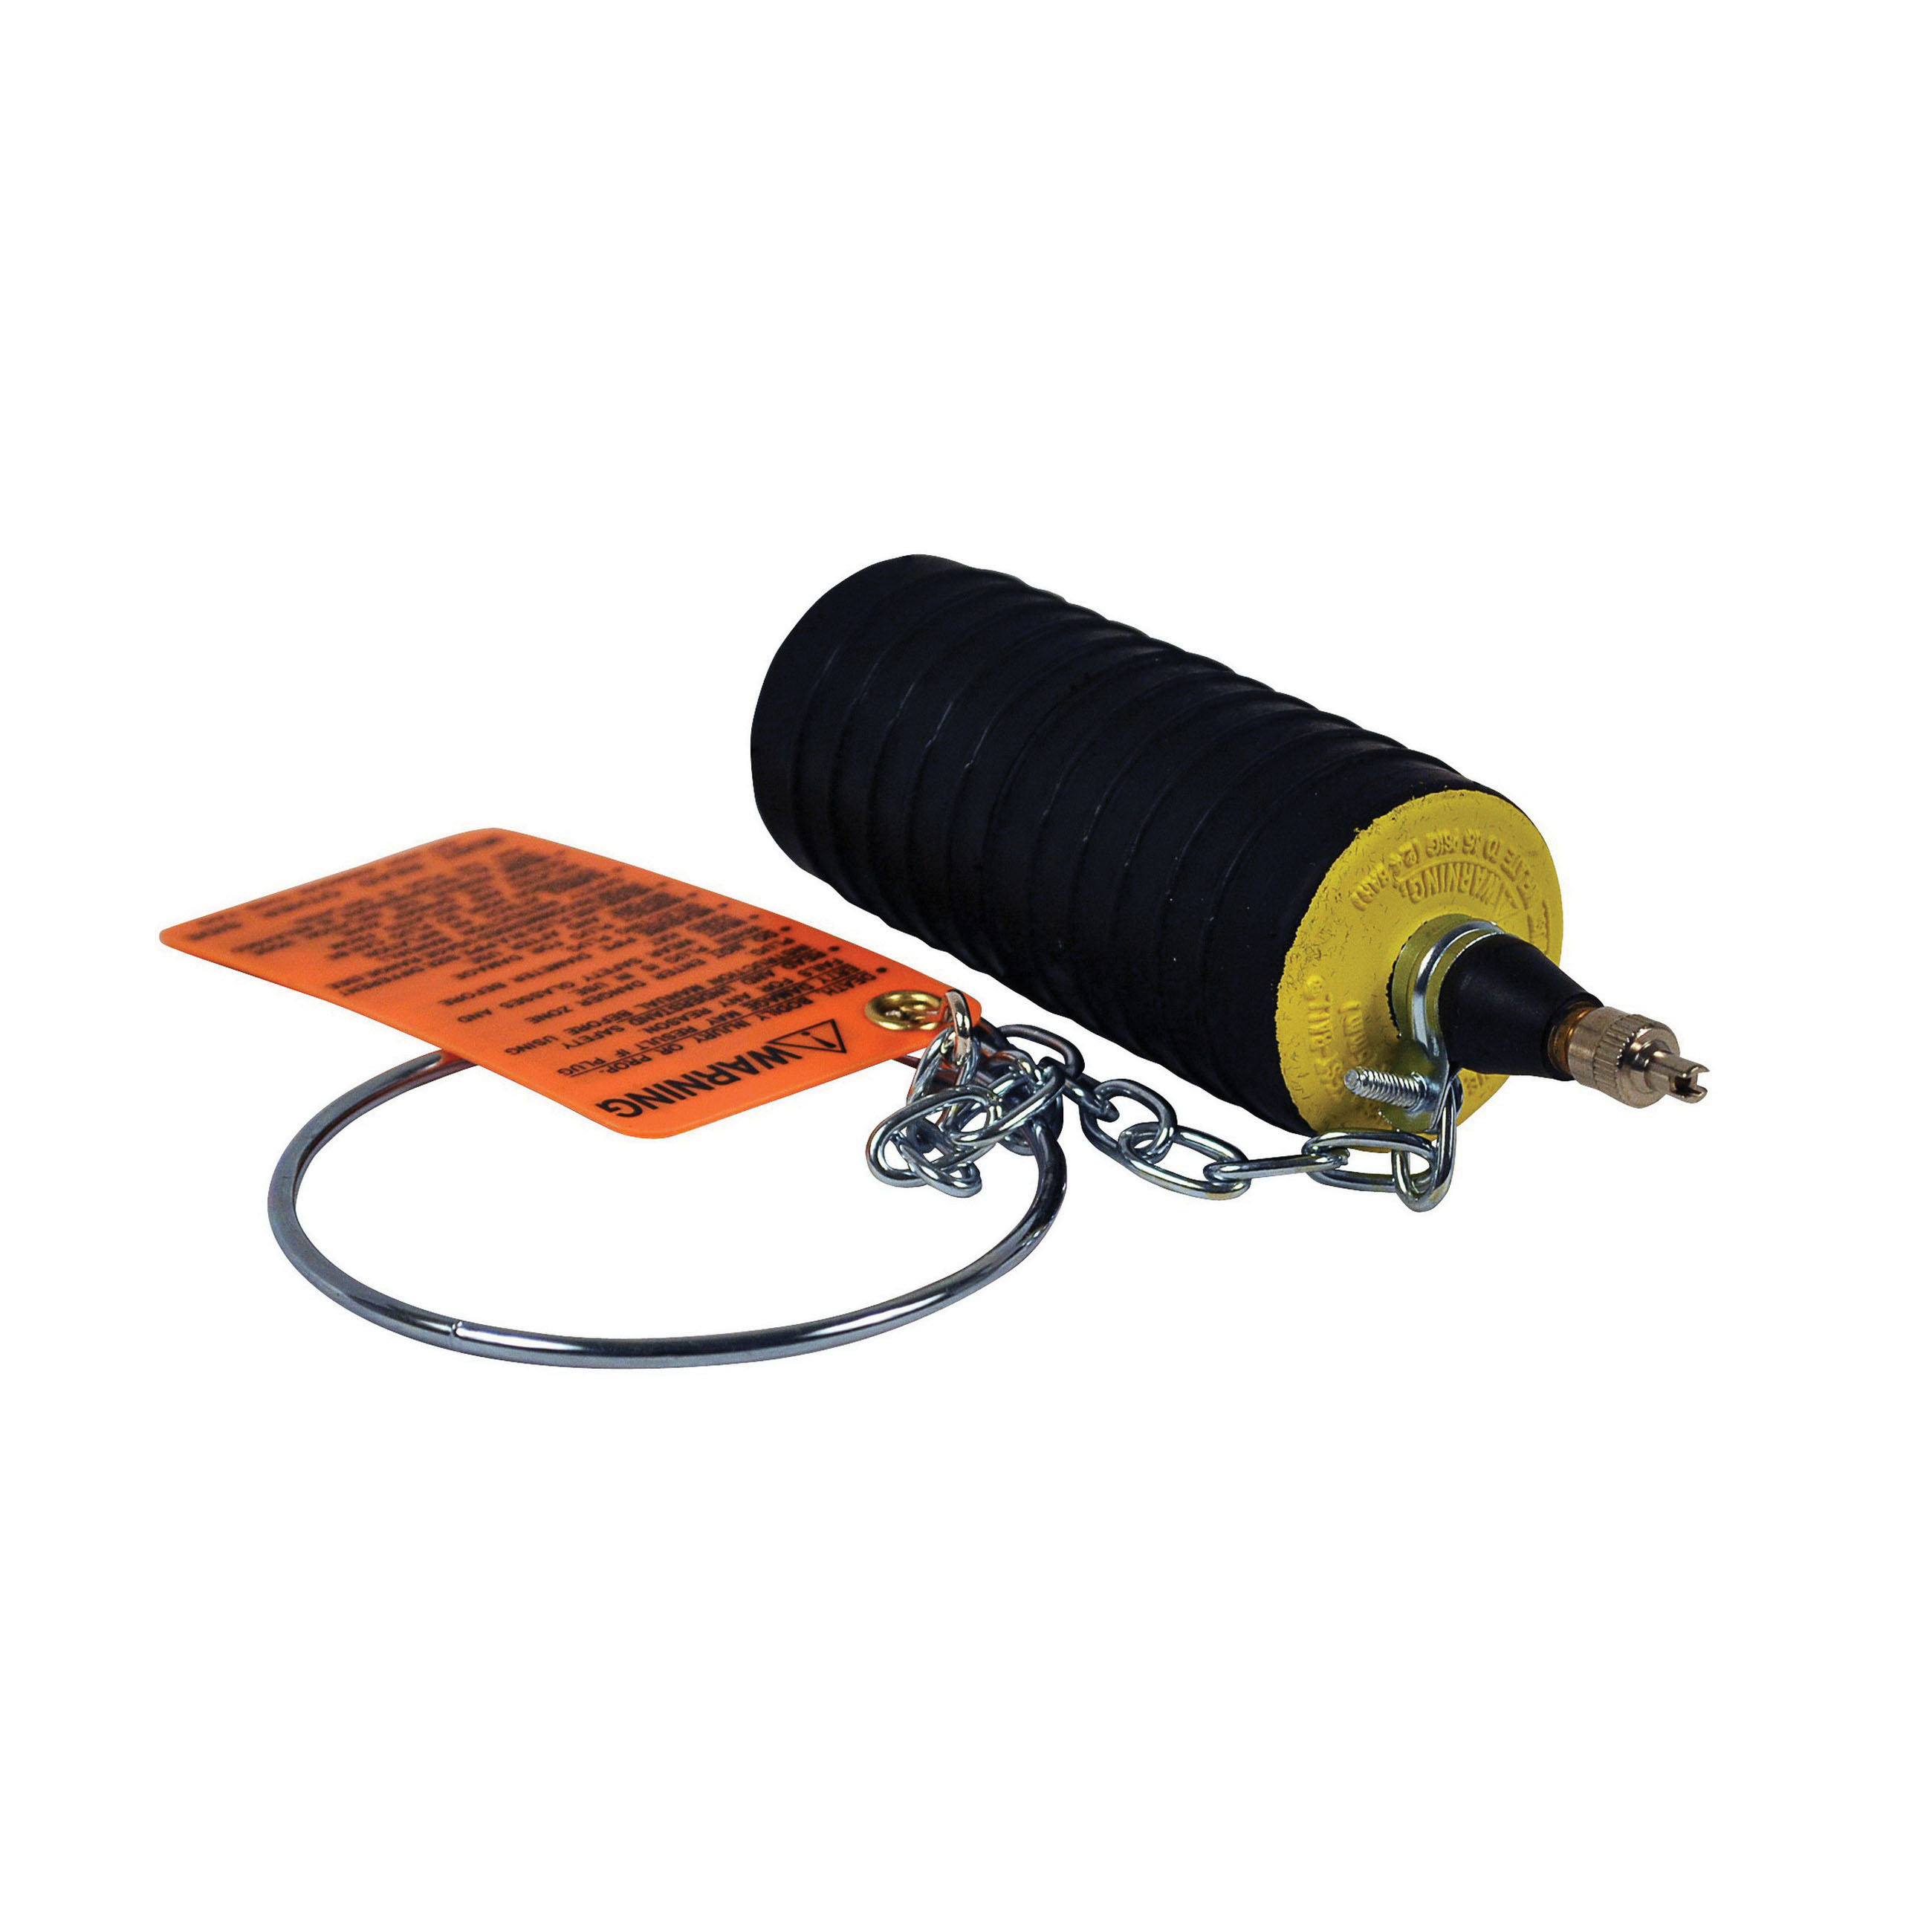 Cherne® Test-Ball® 276-468 Zinc Plated Chain Black/Yellow Natural Rubber Multi-Size Pneumatic Plug, 4 - 6 in